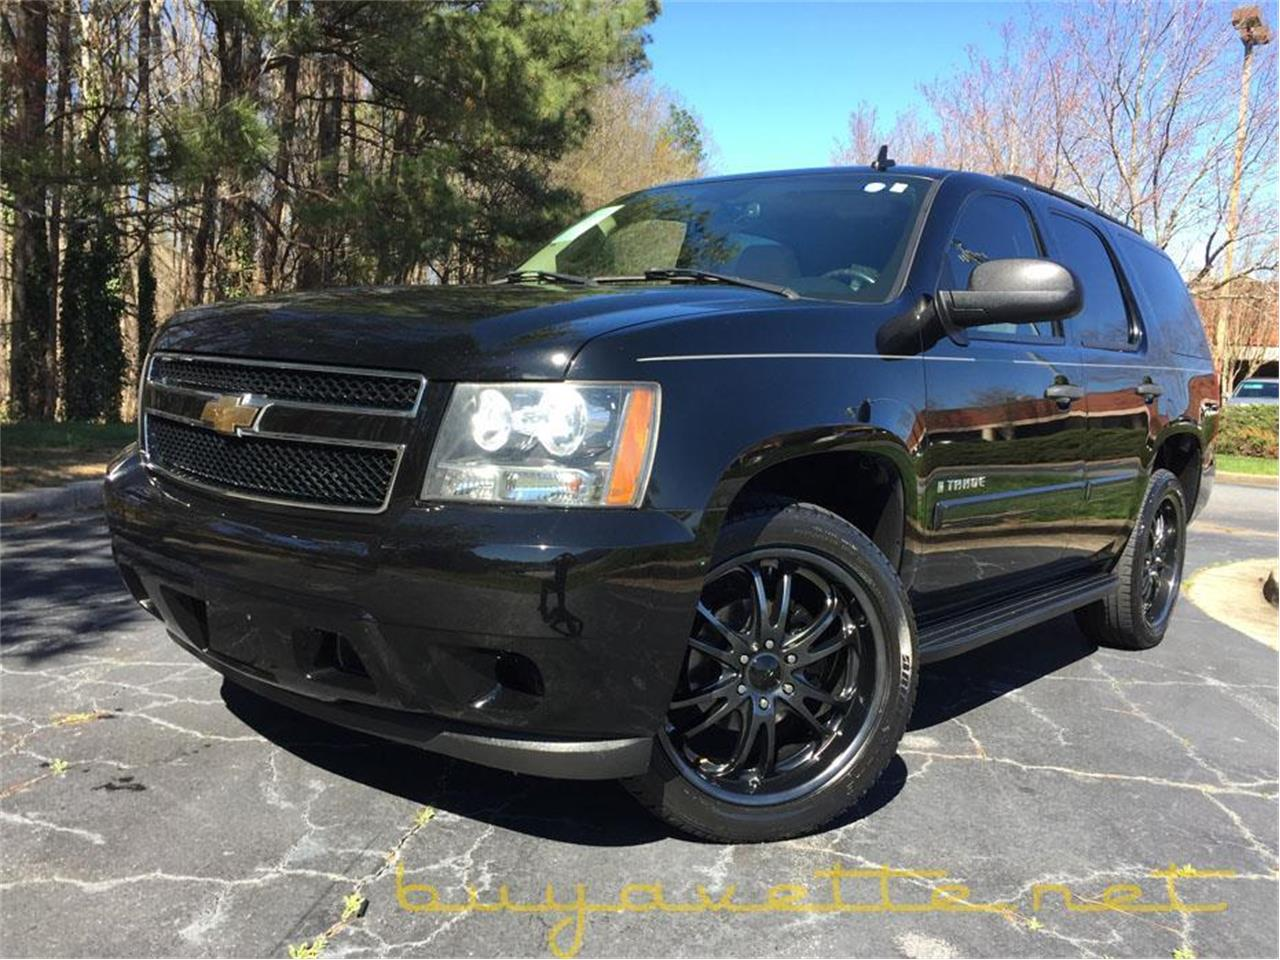 2008 Tahoe For Sale >> 2008 Chevrolet Tahoe For Sale Classiccars Com Cc 1072866